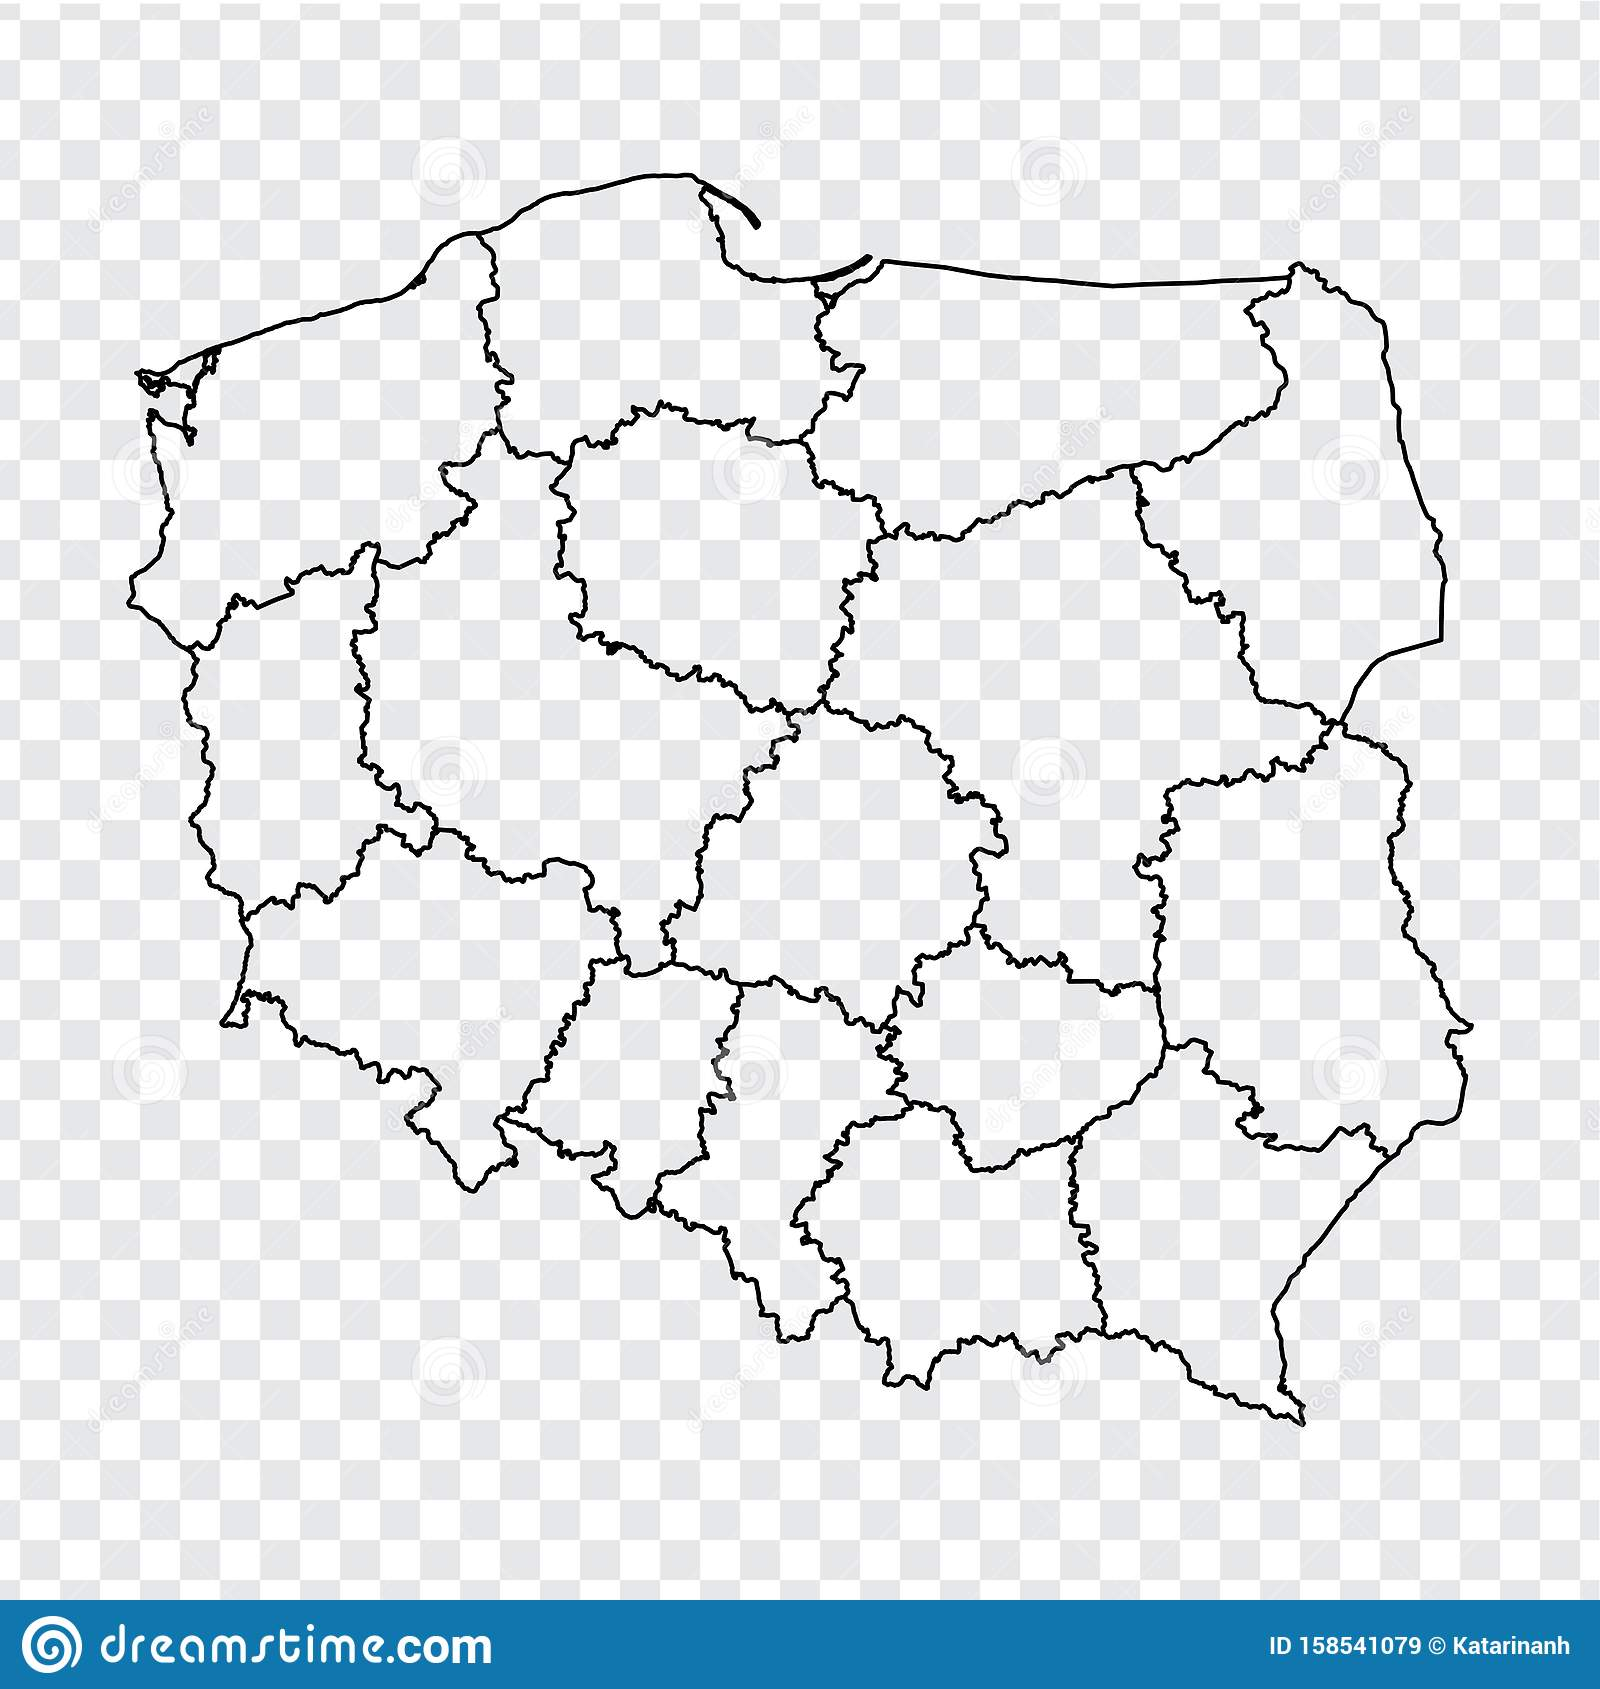 Picture of: Blank Map Republic Of Poland High Quality Map Of Poland With Provinces On Transparent Background For Your Web Site Design Logo Stock Vector Illustration Of Concept Flat 158541079